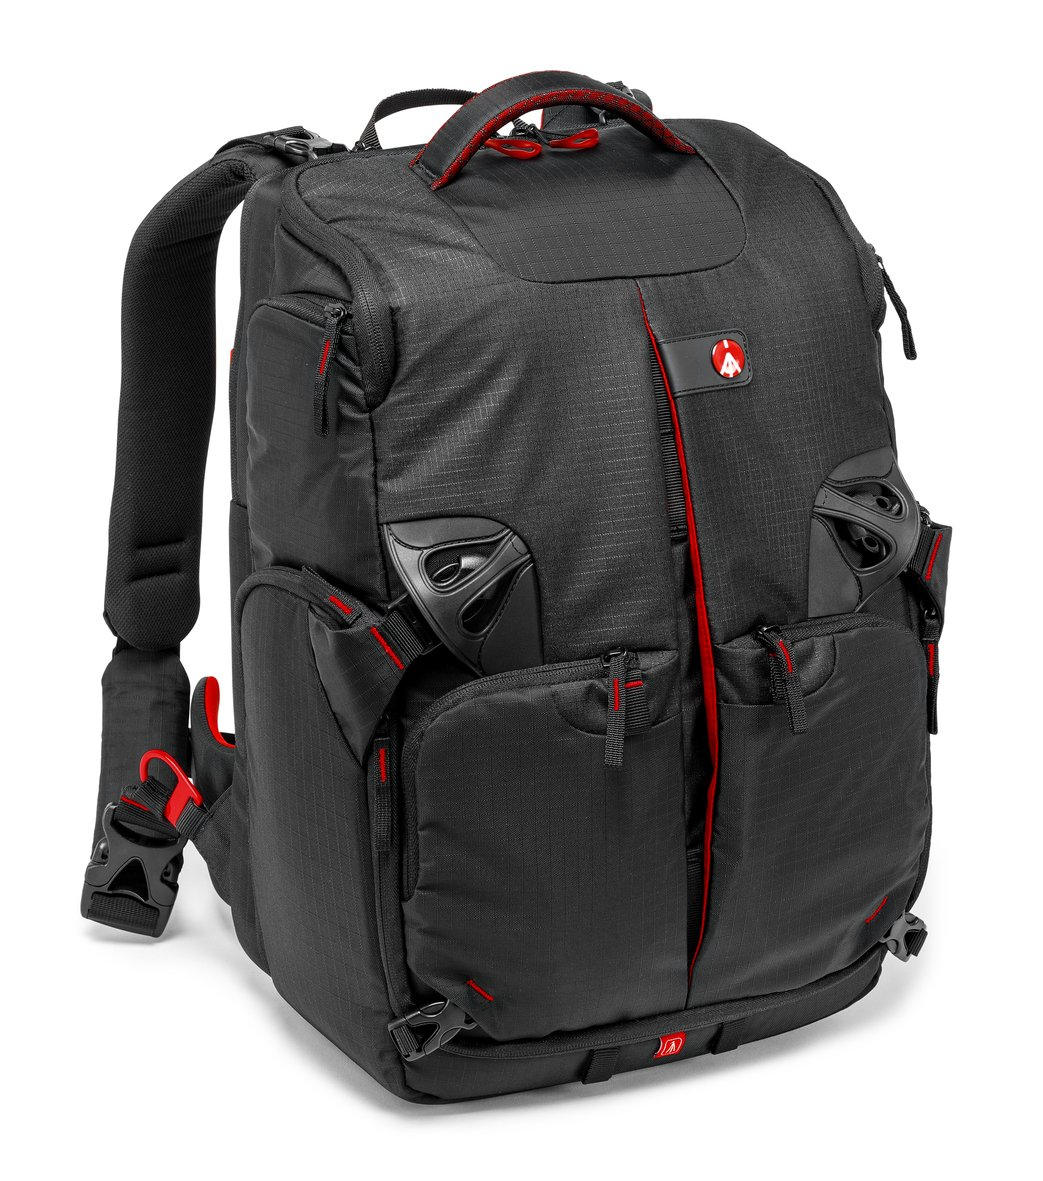 Manfrotto Phantom Pro-Light Backpack for DJI Phantom 4, Phantom 4 PRO, 3DR Solo Quadcopter Drones + Gimbal or Phantom FC40, Fits Extra Accessories GoPro Cameras and Laptop by Manfrotto